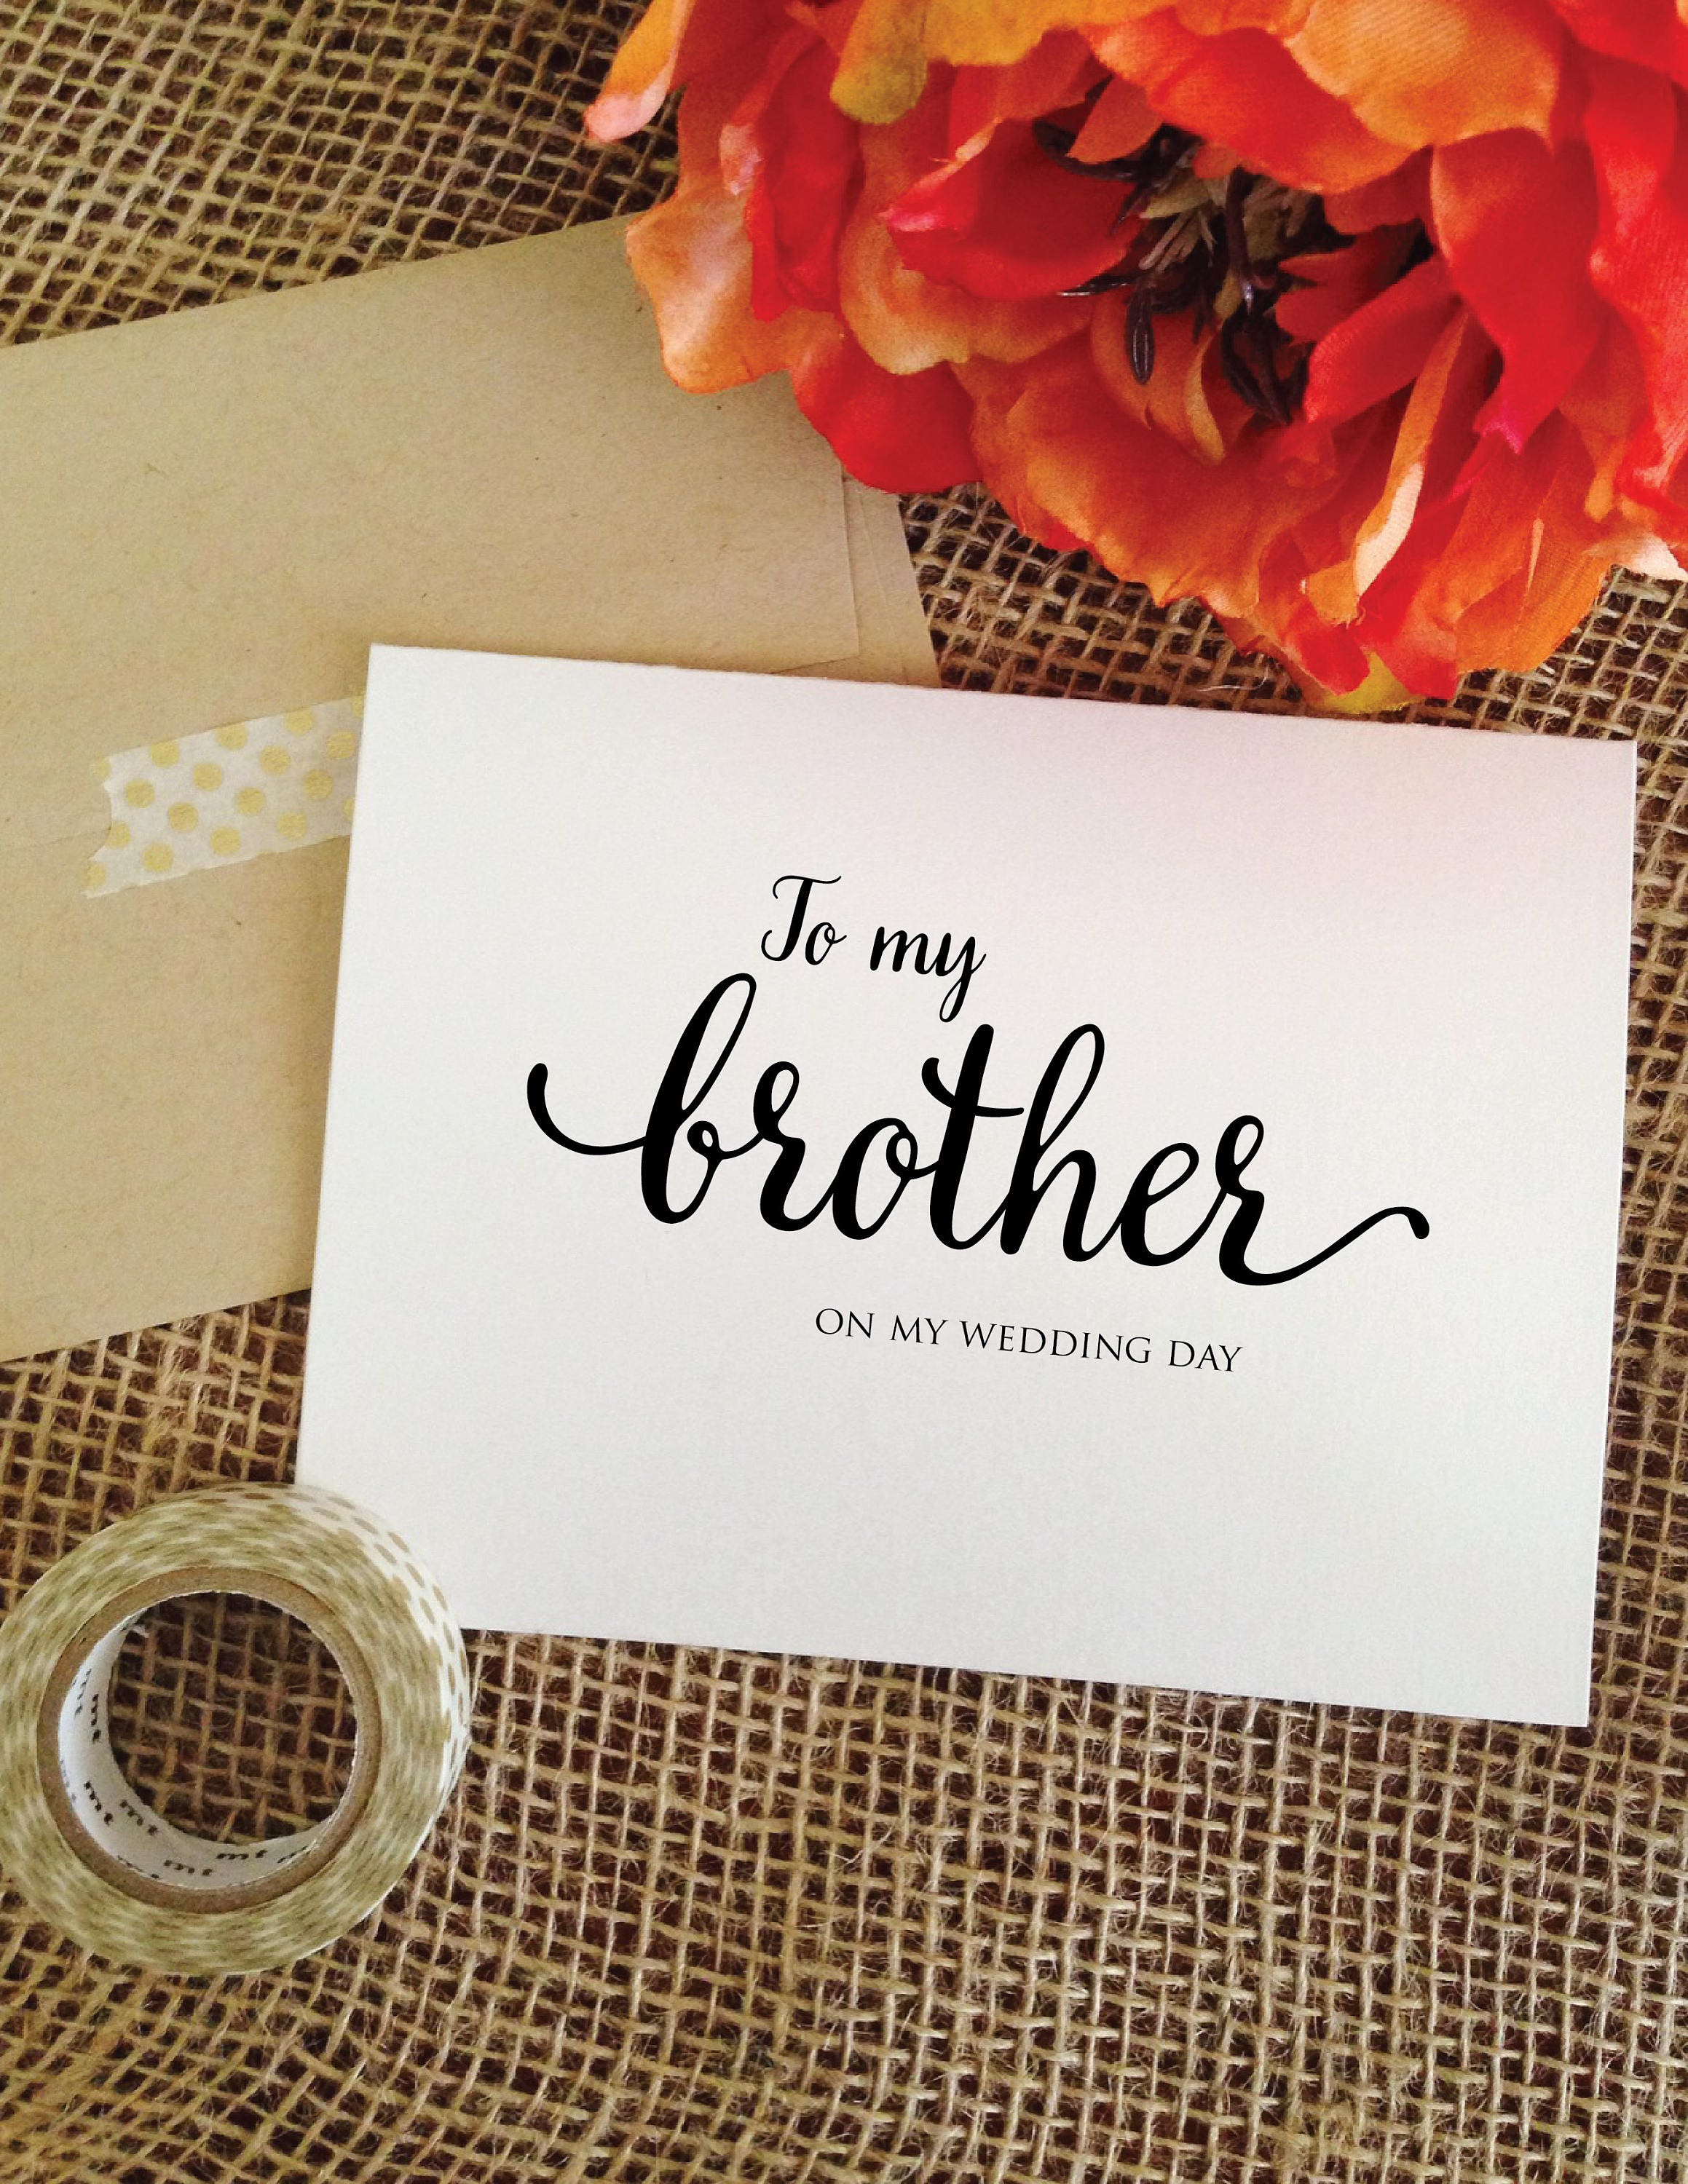 To my Brother on my wedding day Card brother Wedding Card To My ...